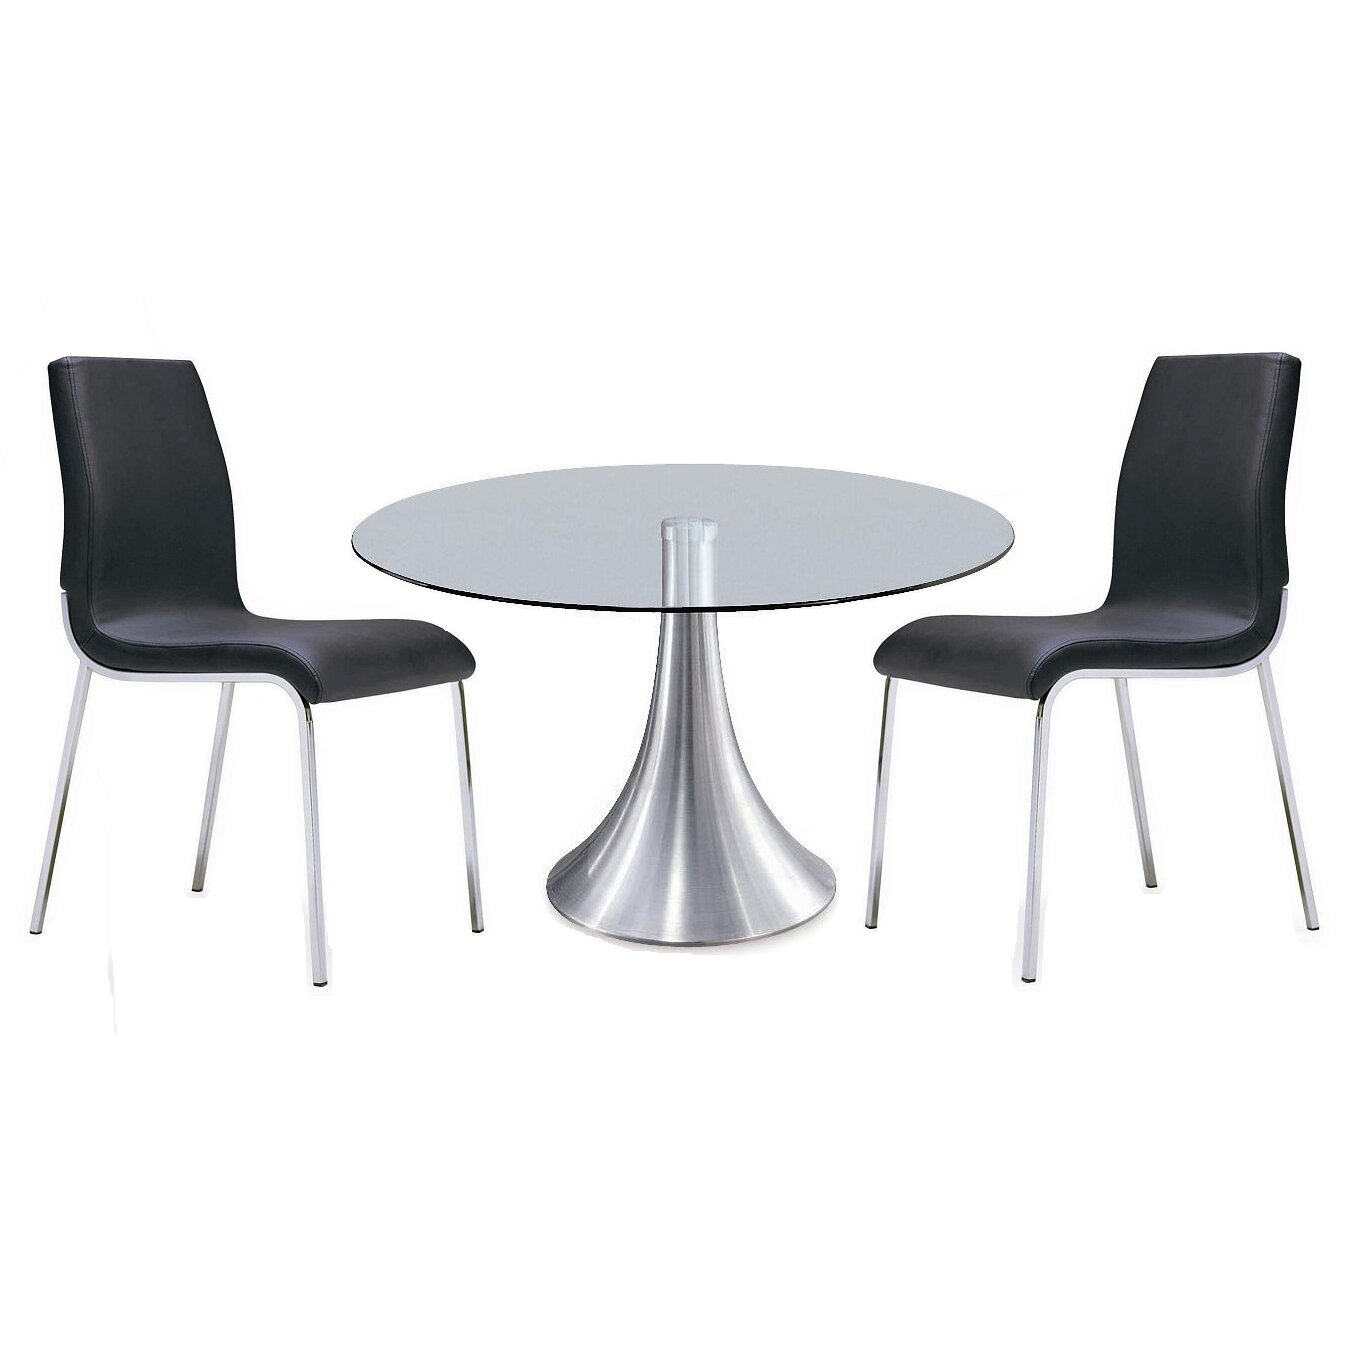 Cafe dining table reviews allmodern for Table 85 restaurant menu